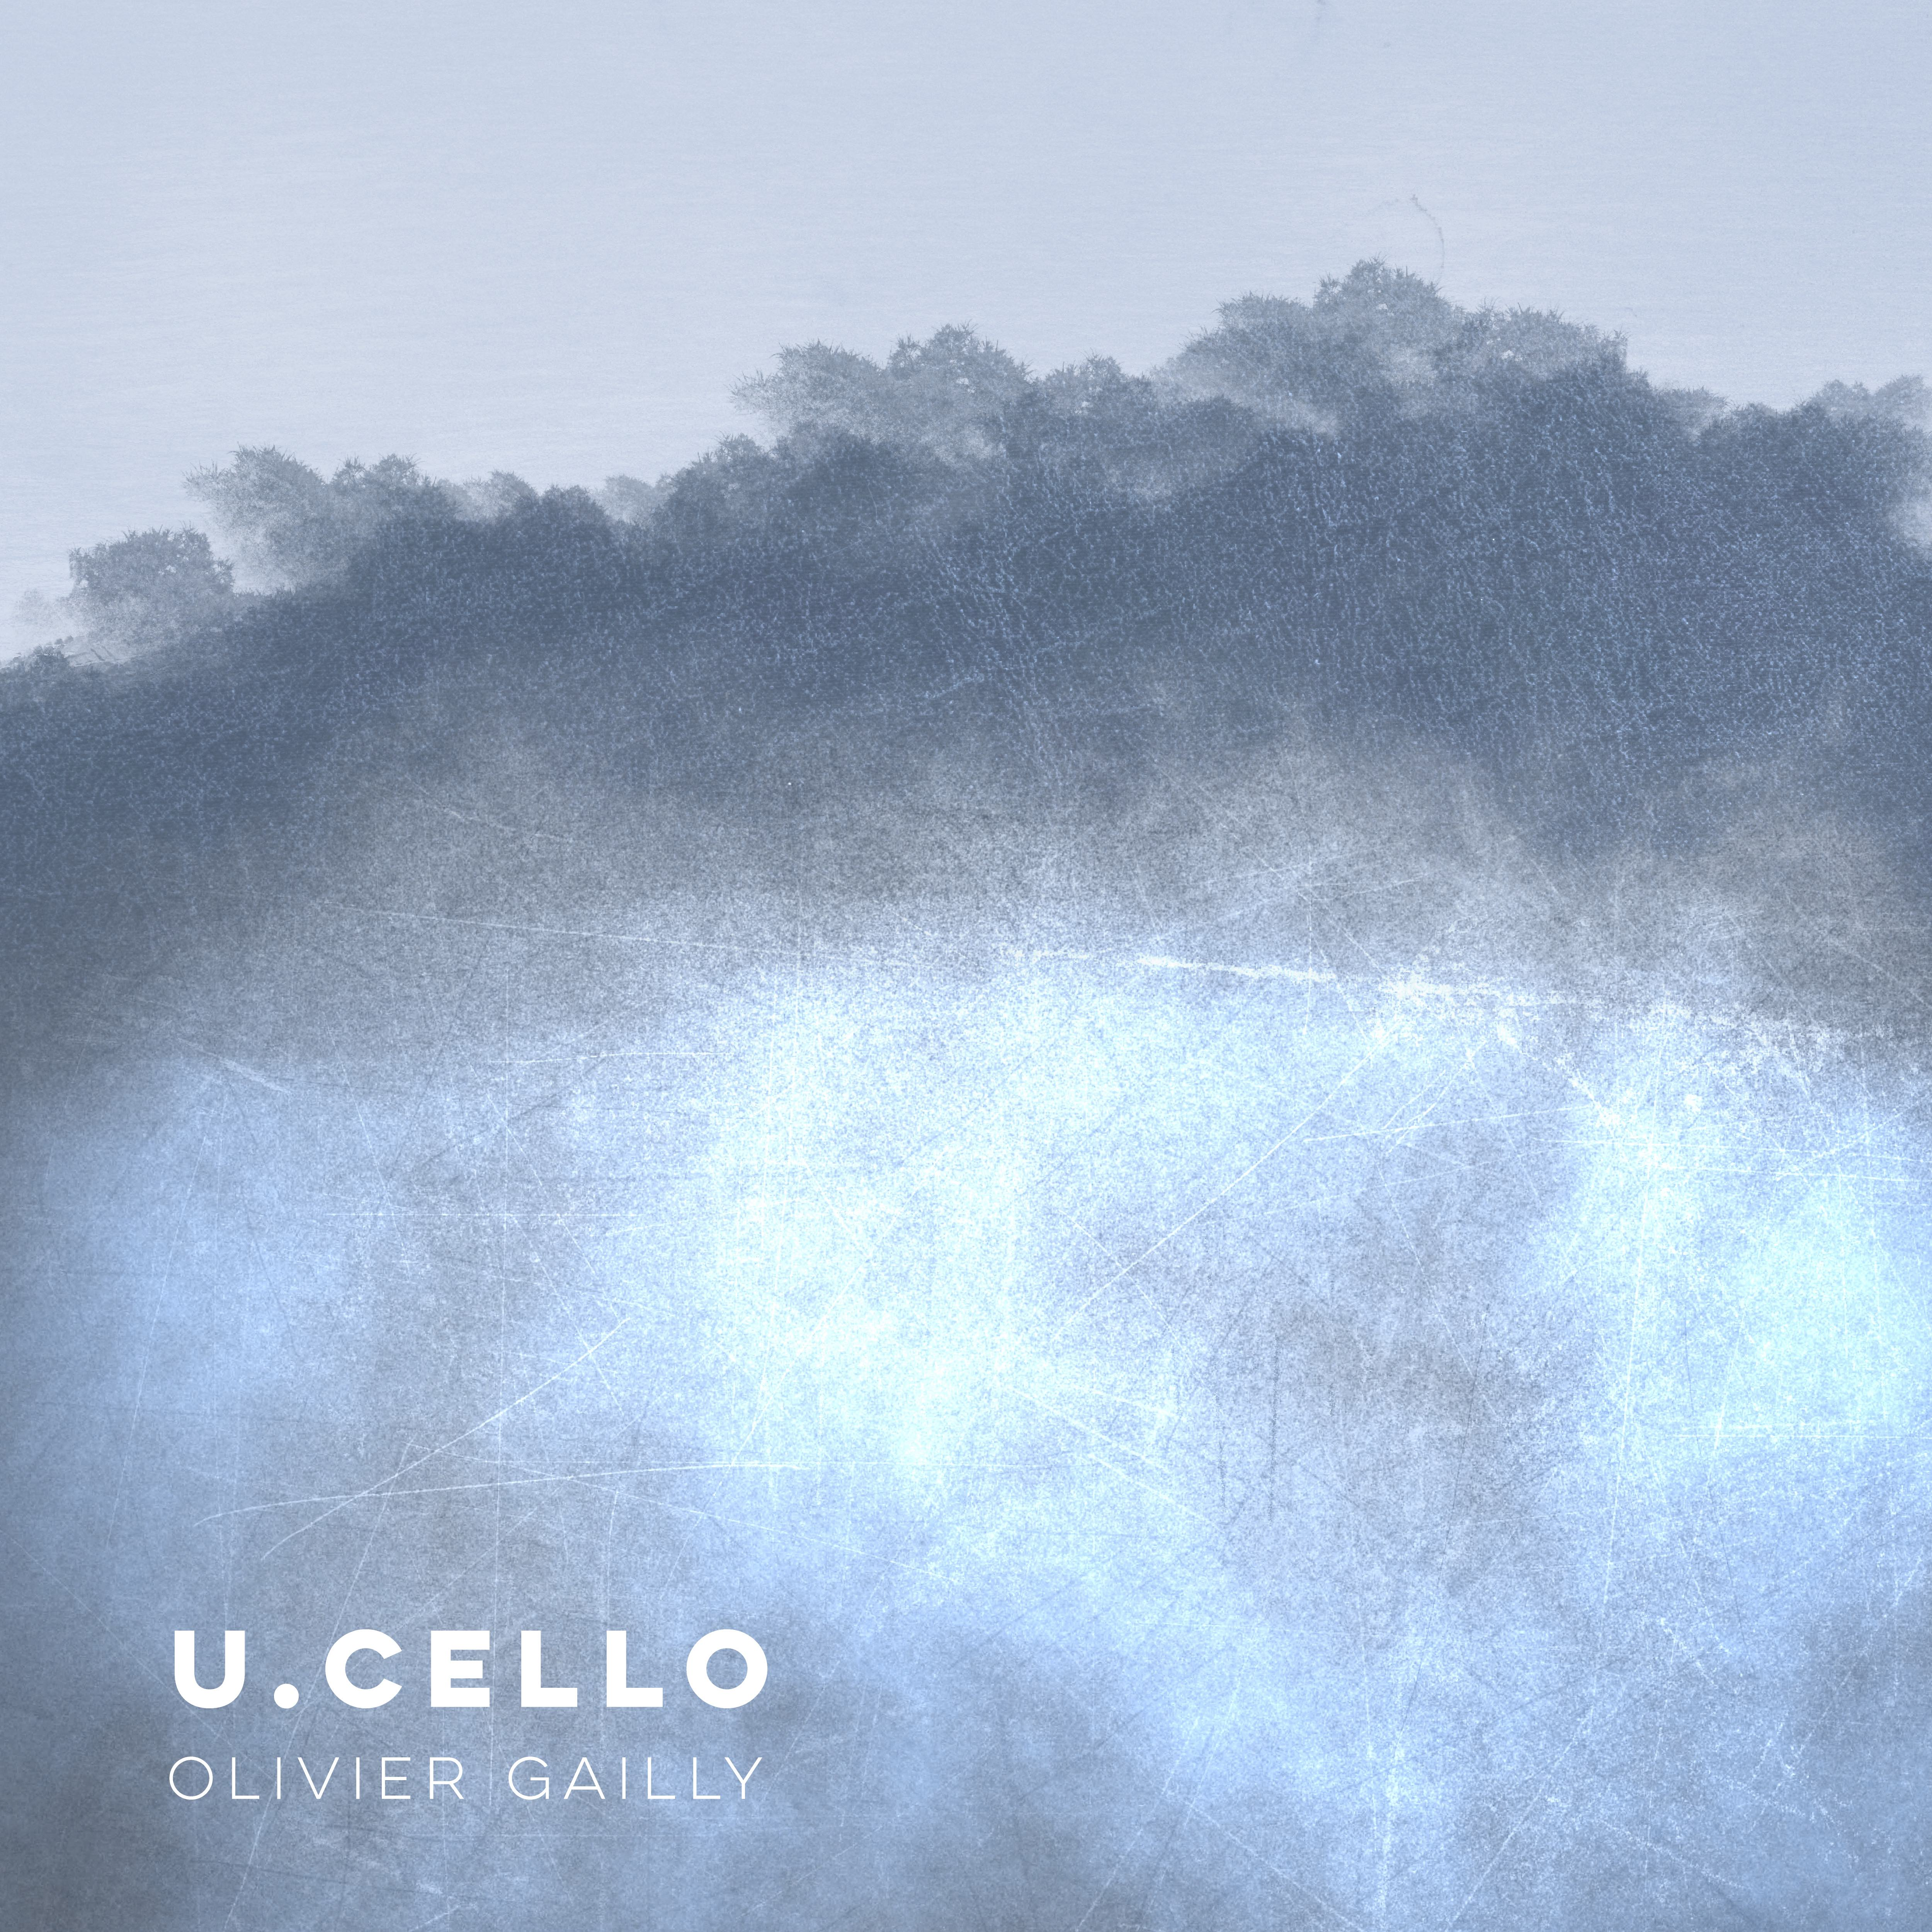 Cover CD U.cello